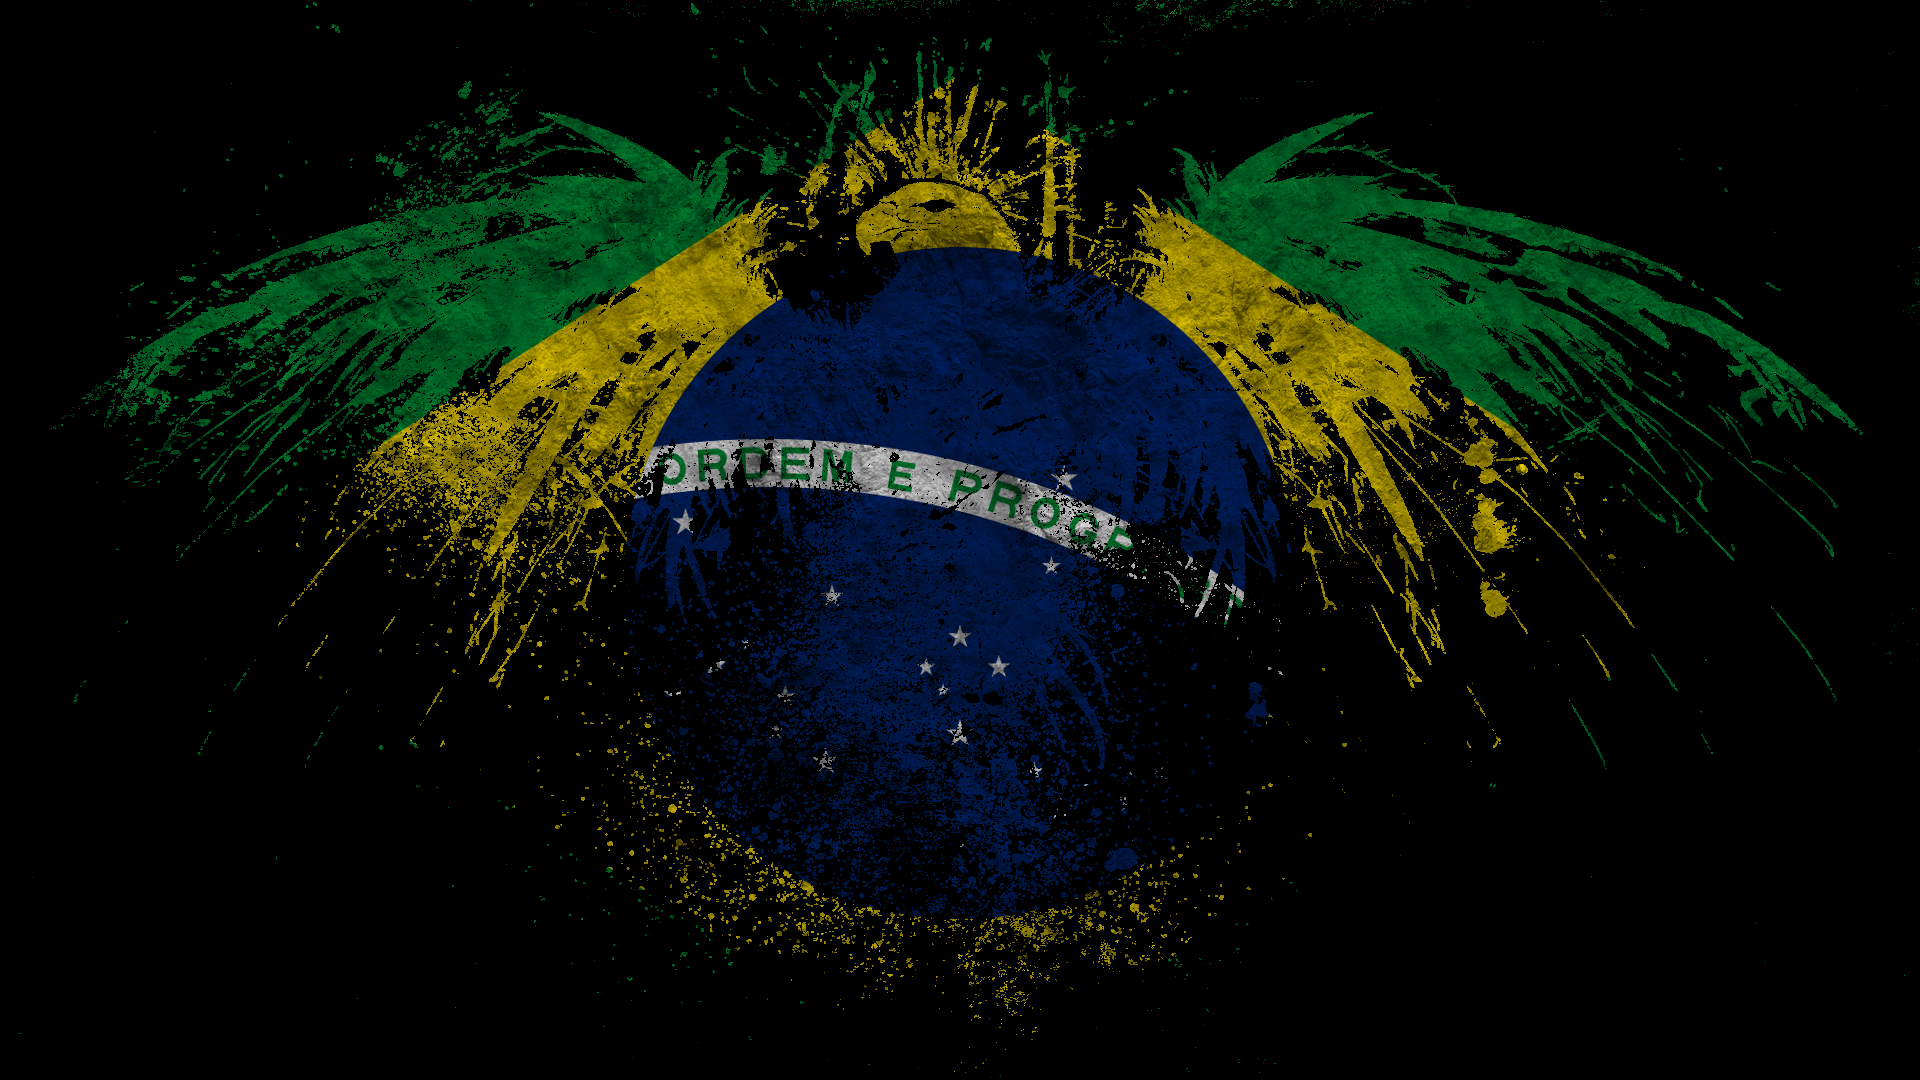 Brasil Flag Backgrounds (PC, Mobile, Gadgets) Compatible | 1920x1080 px